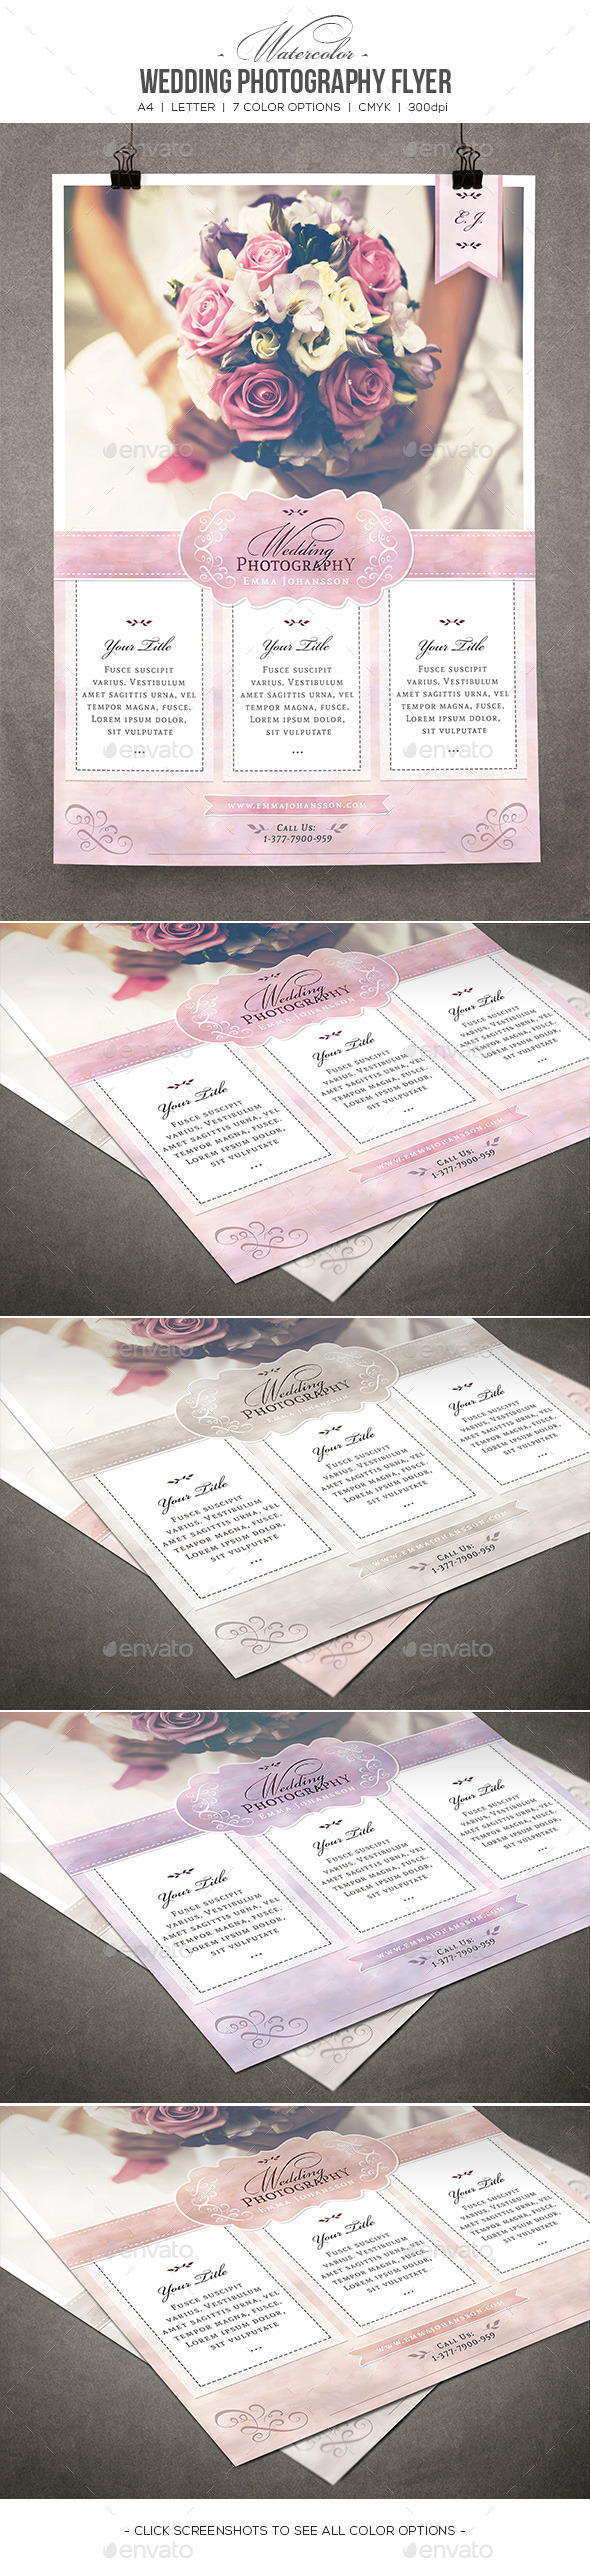 GraphicRiver Watercolor Wedding Photography Flyer 10573483